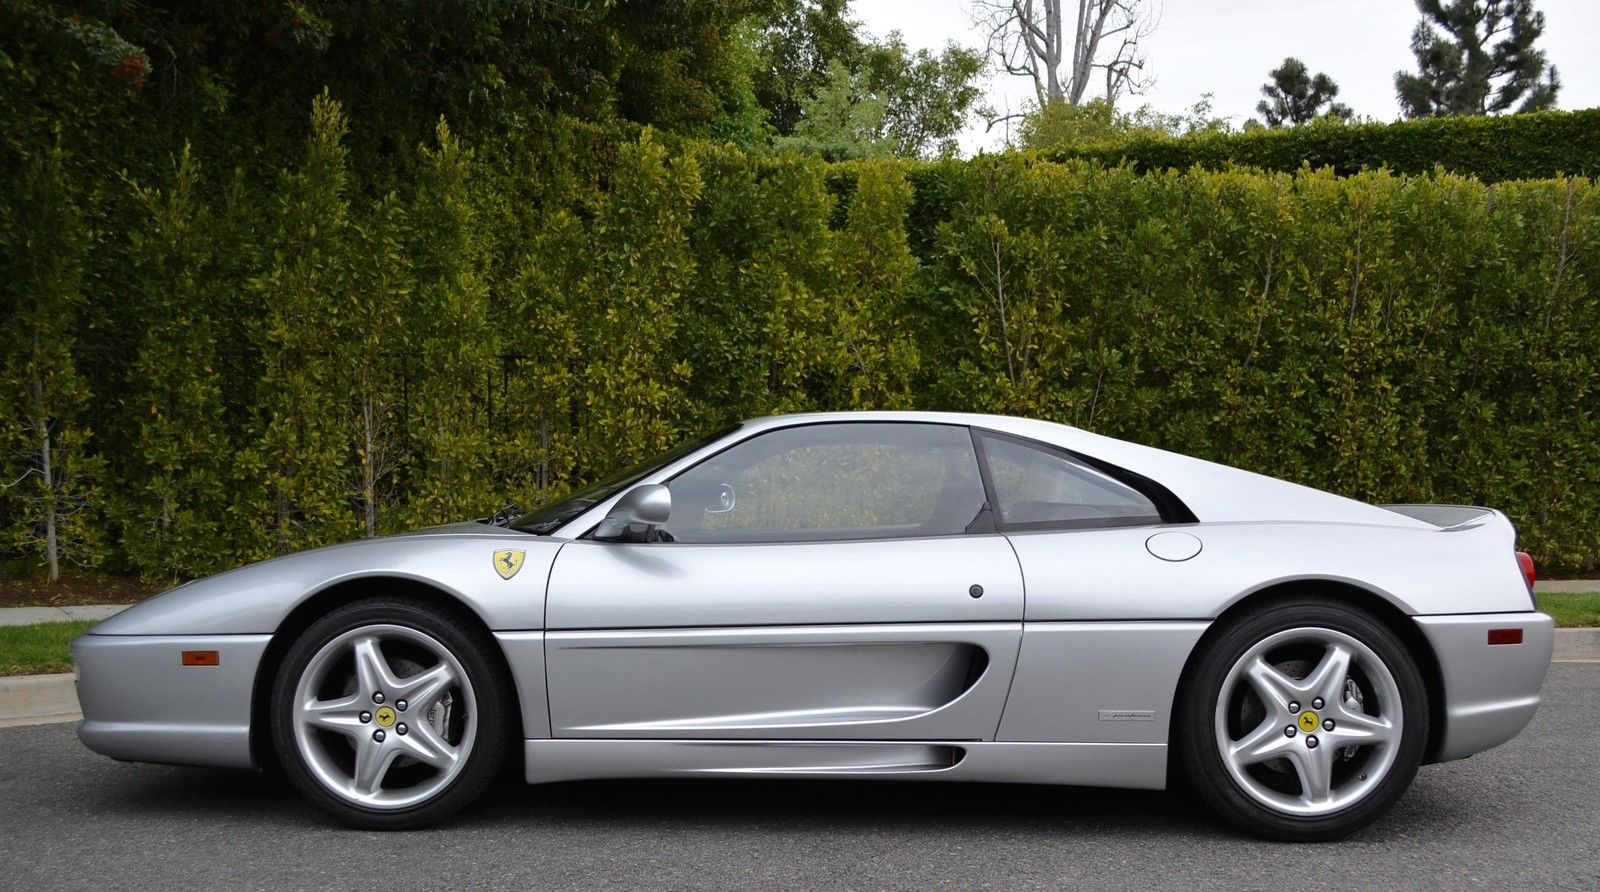 This Ferrari F355 Berlinetta Gated Manual Conversion Could Be Yours